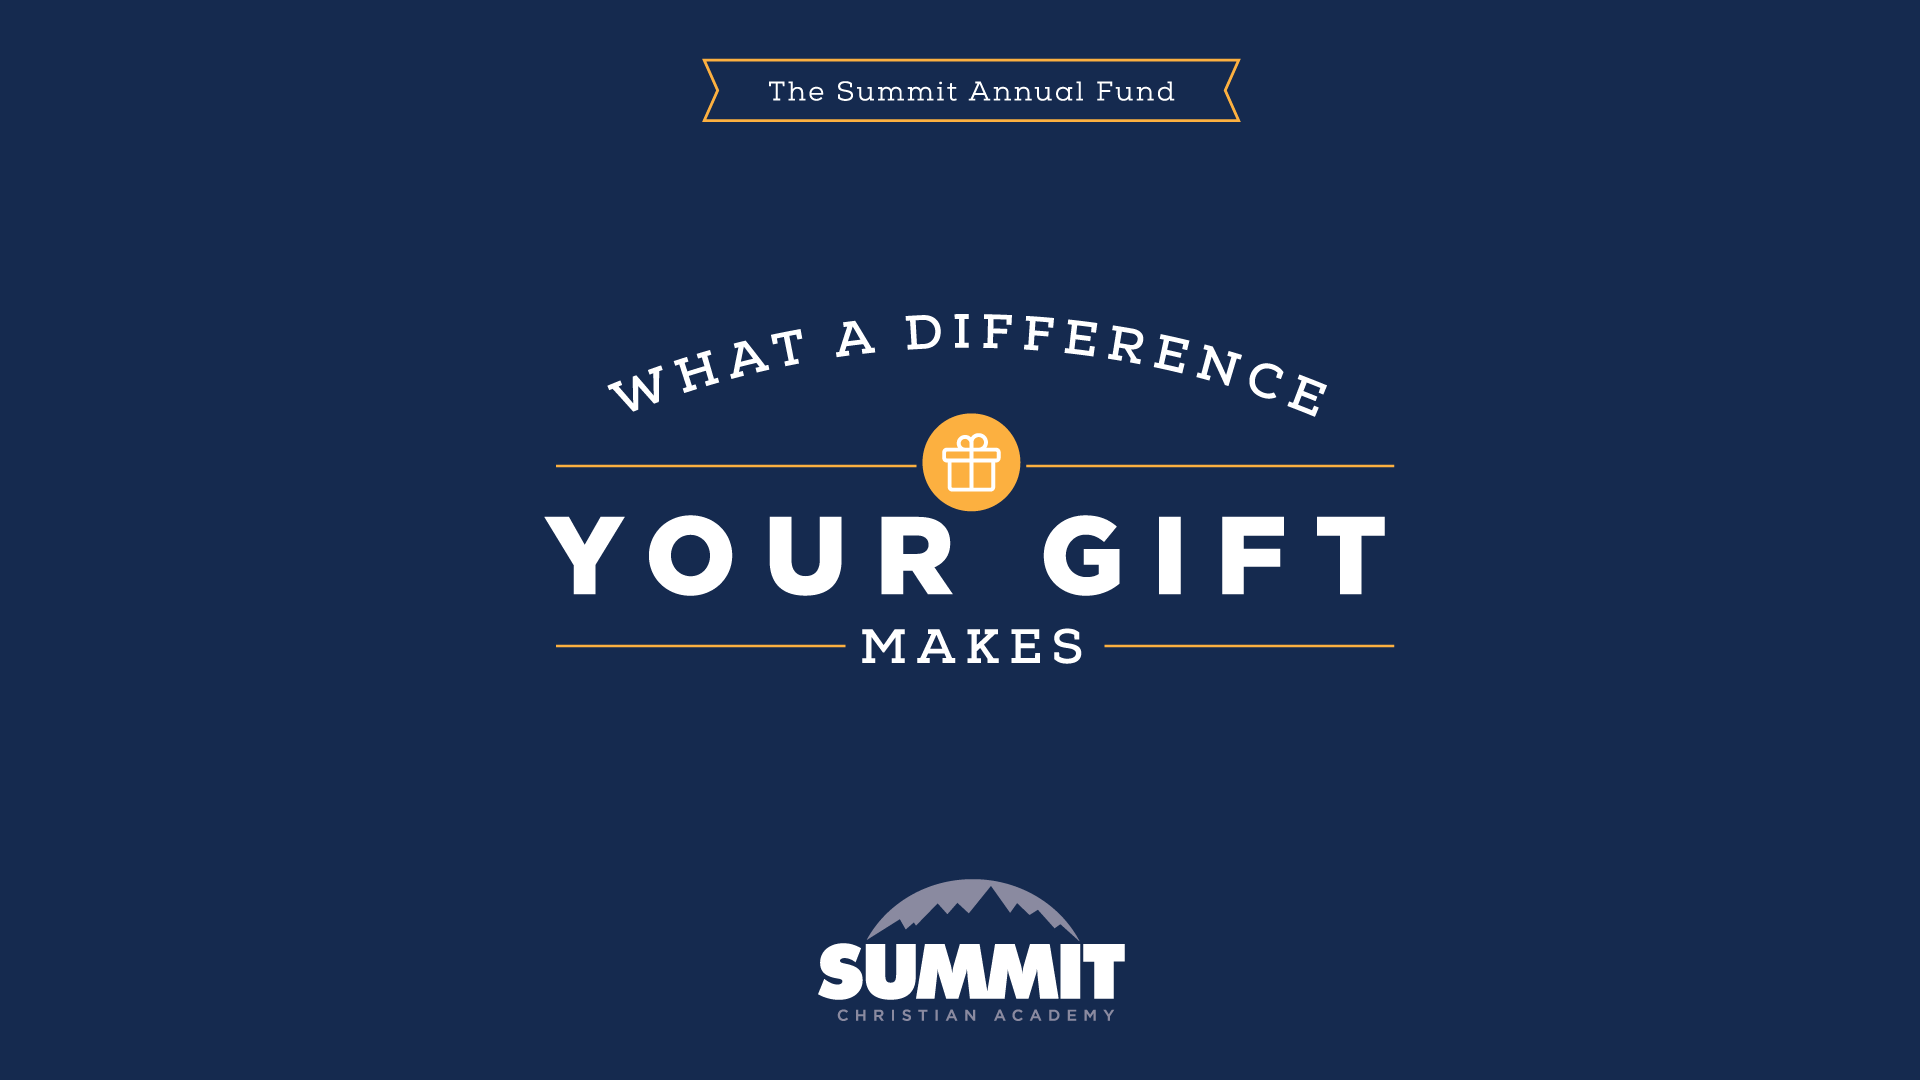 Summit Annual Fund